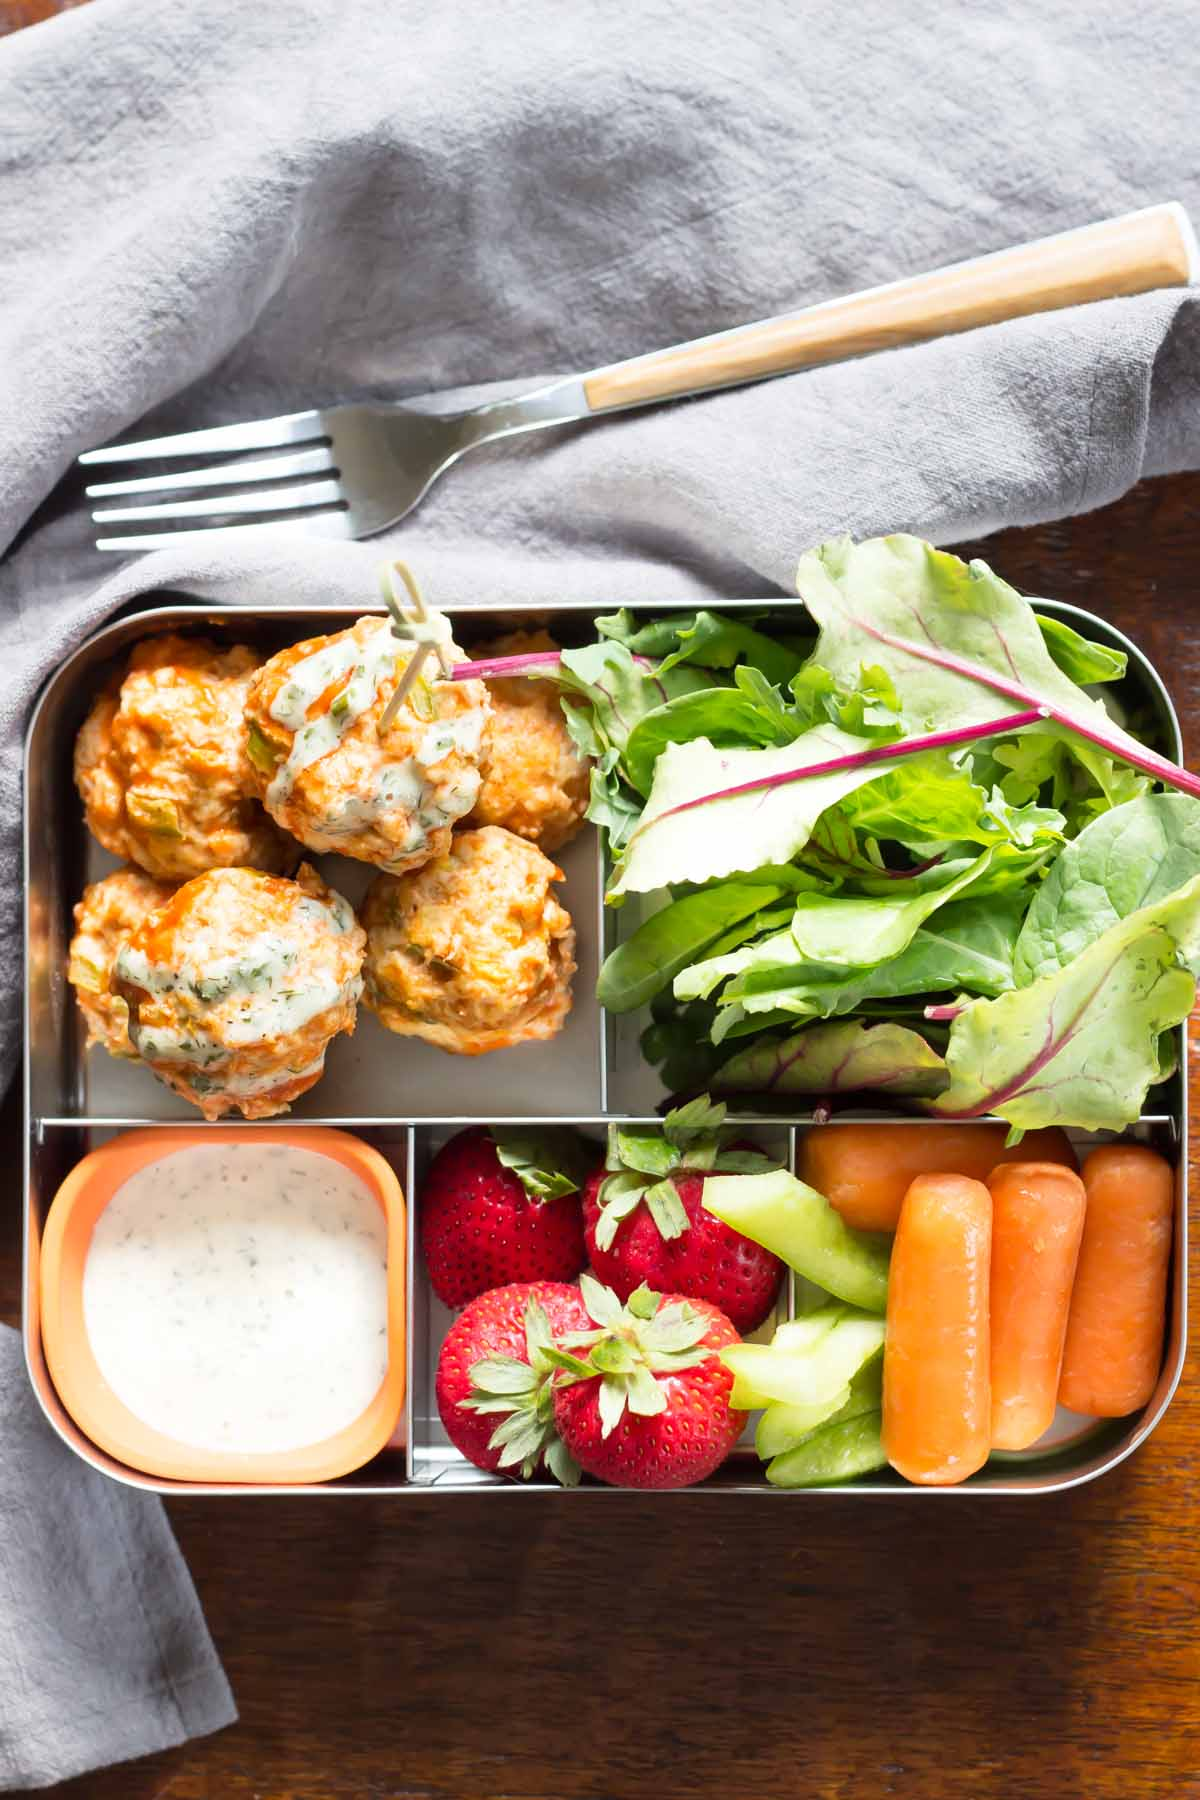 Deez Balls - I don't think I've ever met a child who doesn't like buffalo chicken, which is one of the many reasons these meal-preppable meatballs from Wicked Spatula are genius. I plan on doubling the recipe and freezing the extra. That way, I can pop a few into James' bento and let them defrost overnight in the fridge for an easy make-ahead school lunch.